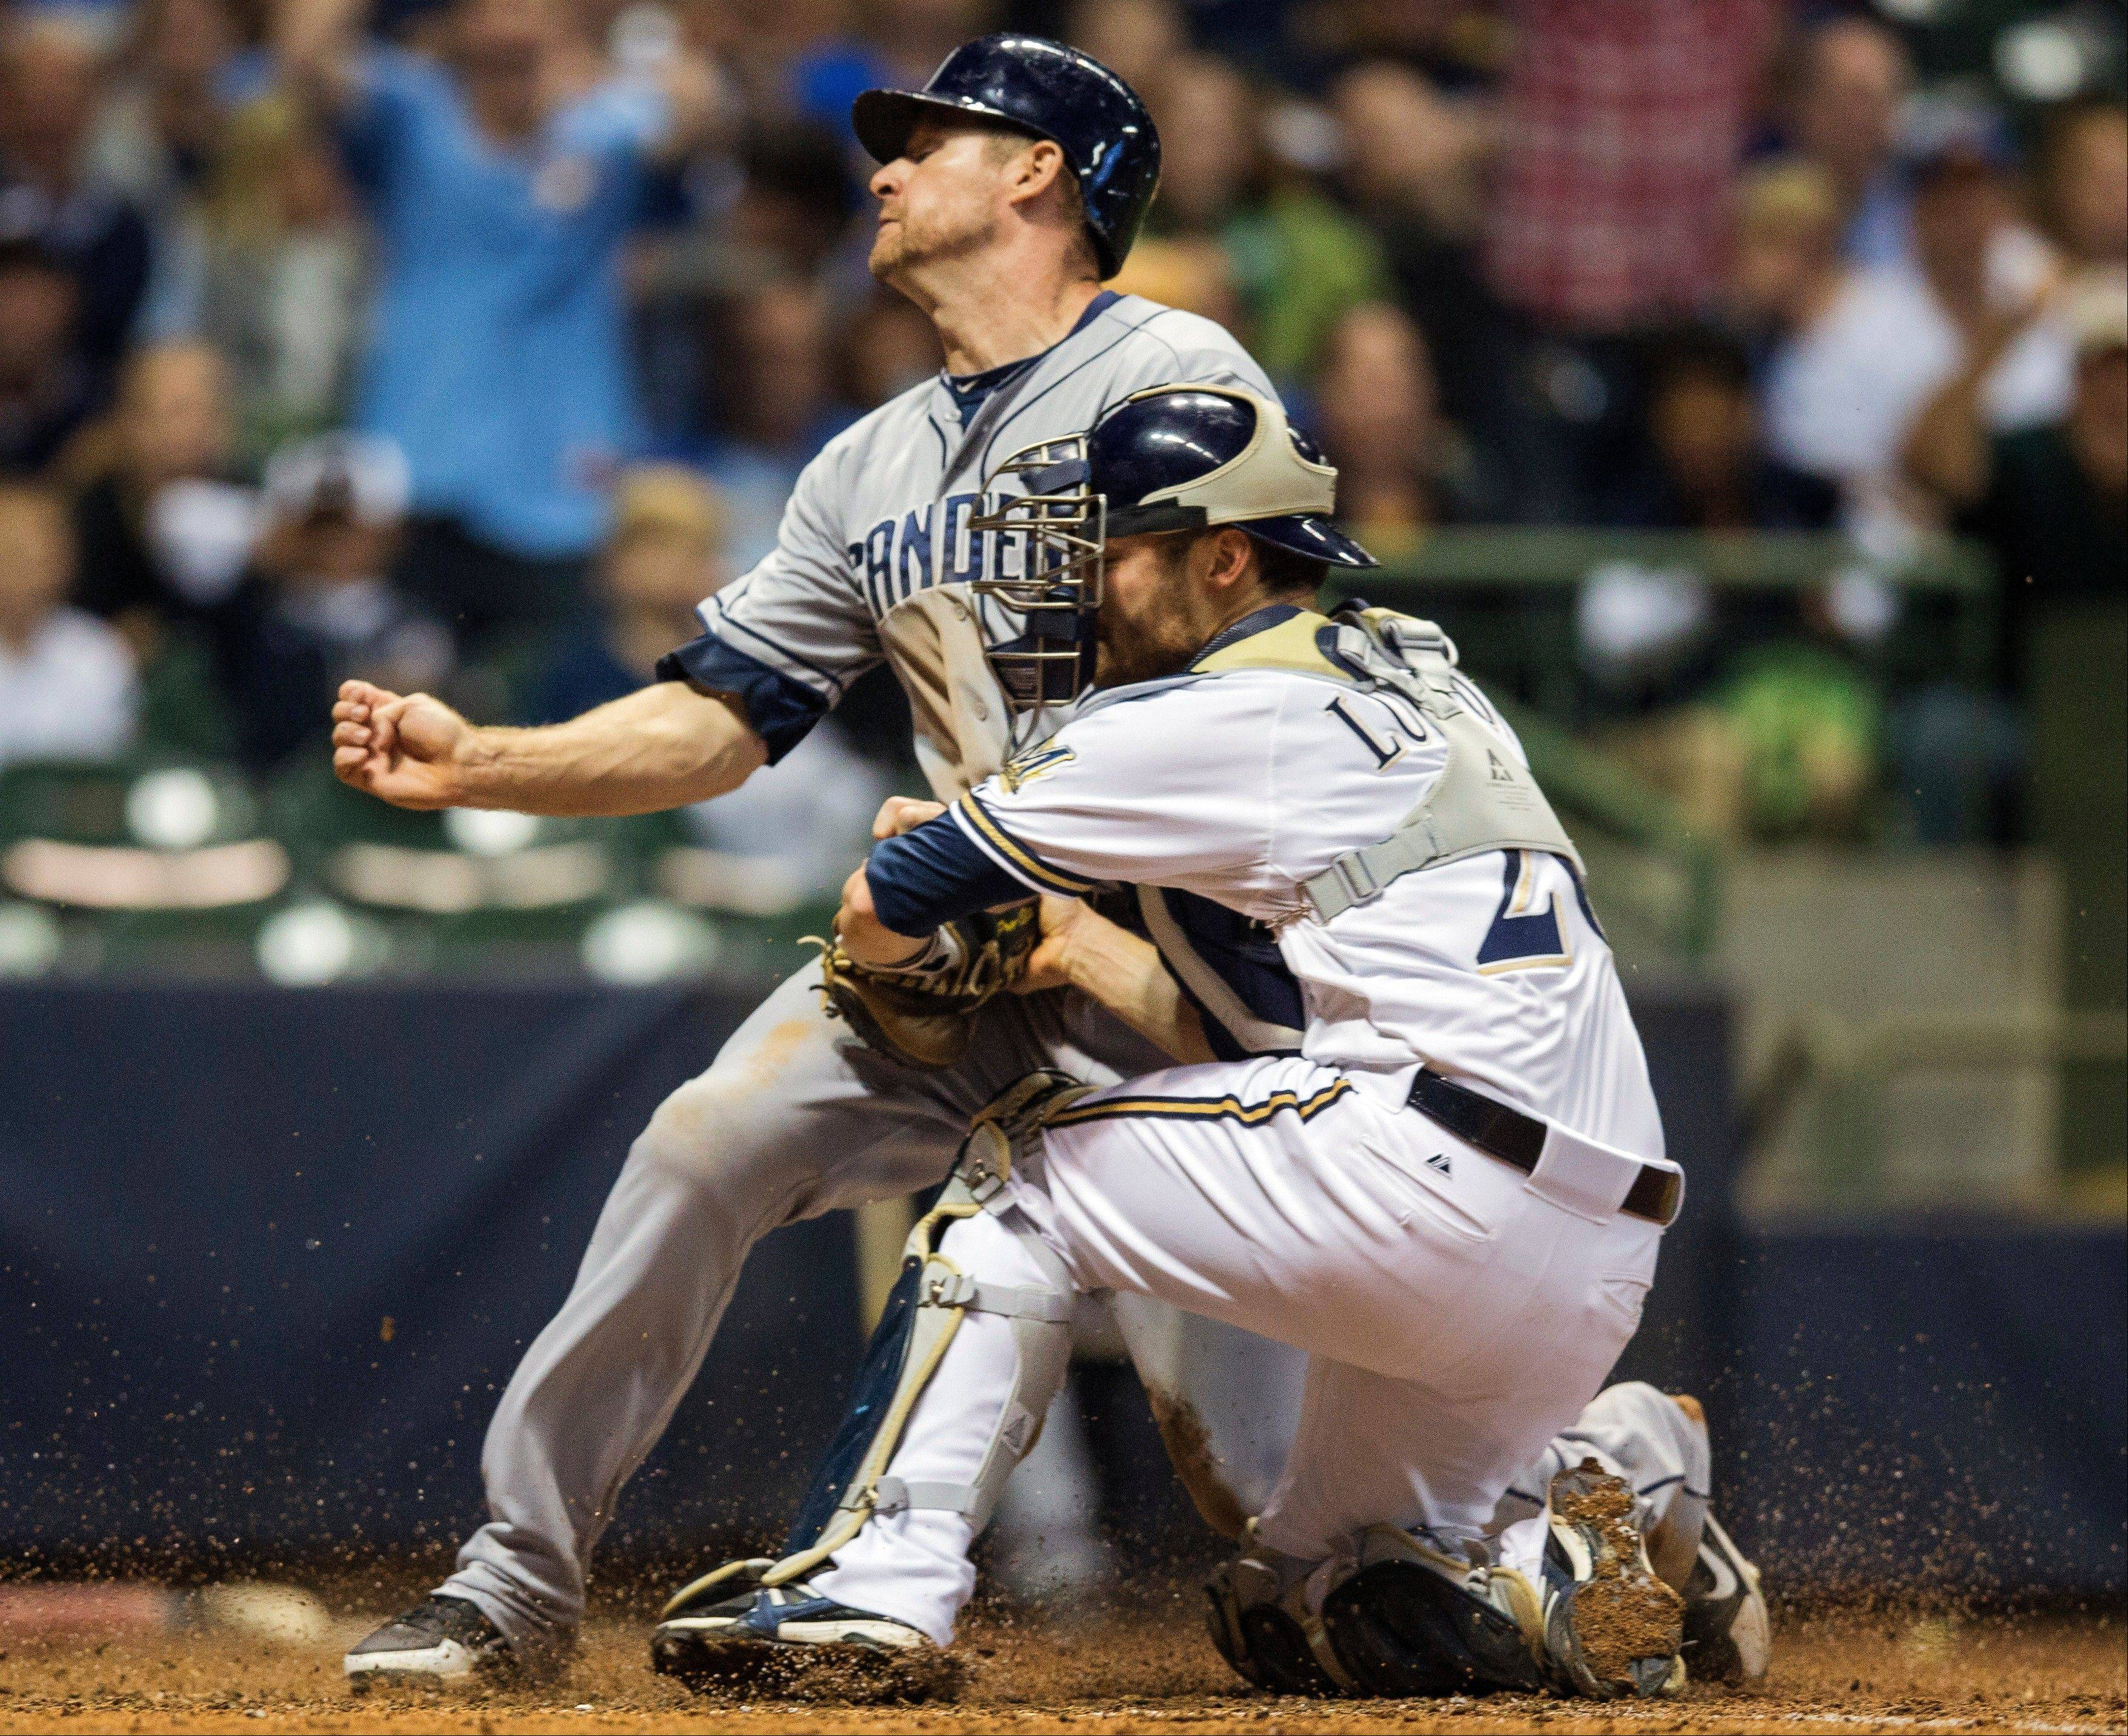 The Padres' Chase Headley beats the tag at home from the Brewers' Jonathan Lucroy during the seventh inning Wednesday in Milwaukee.